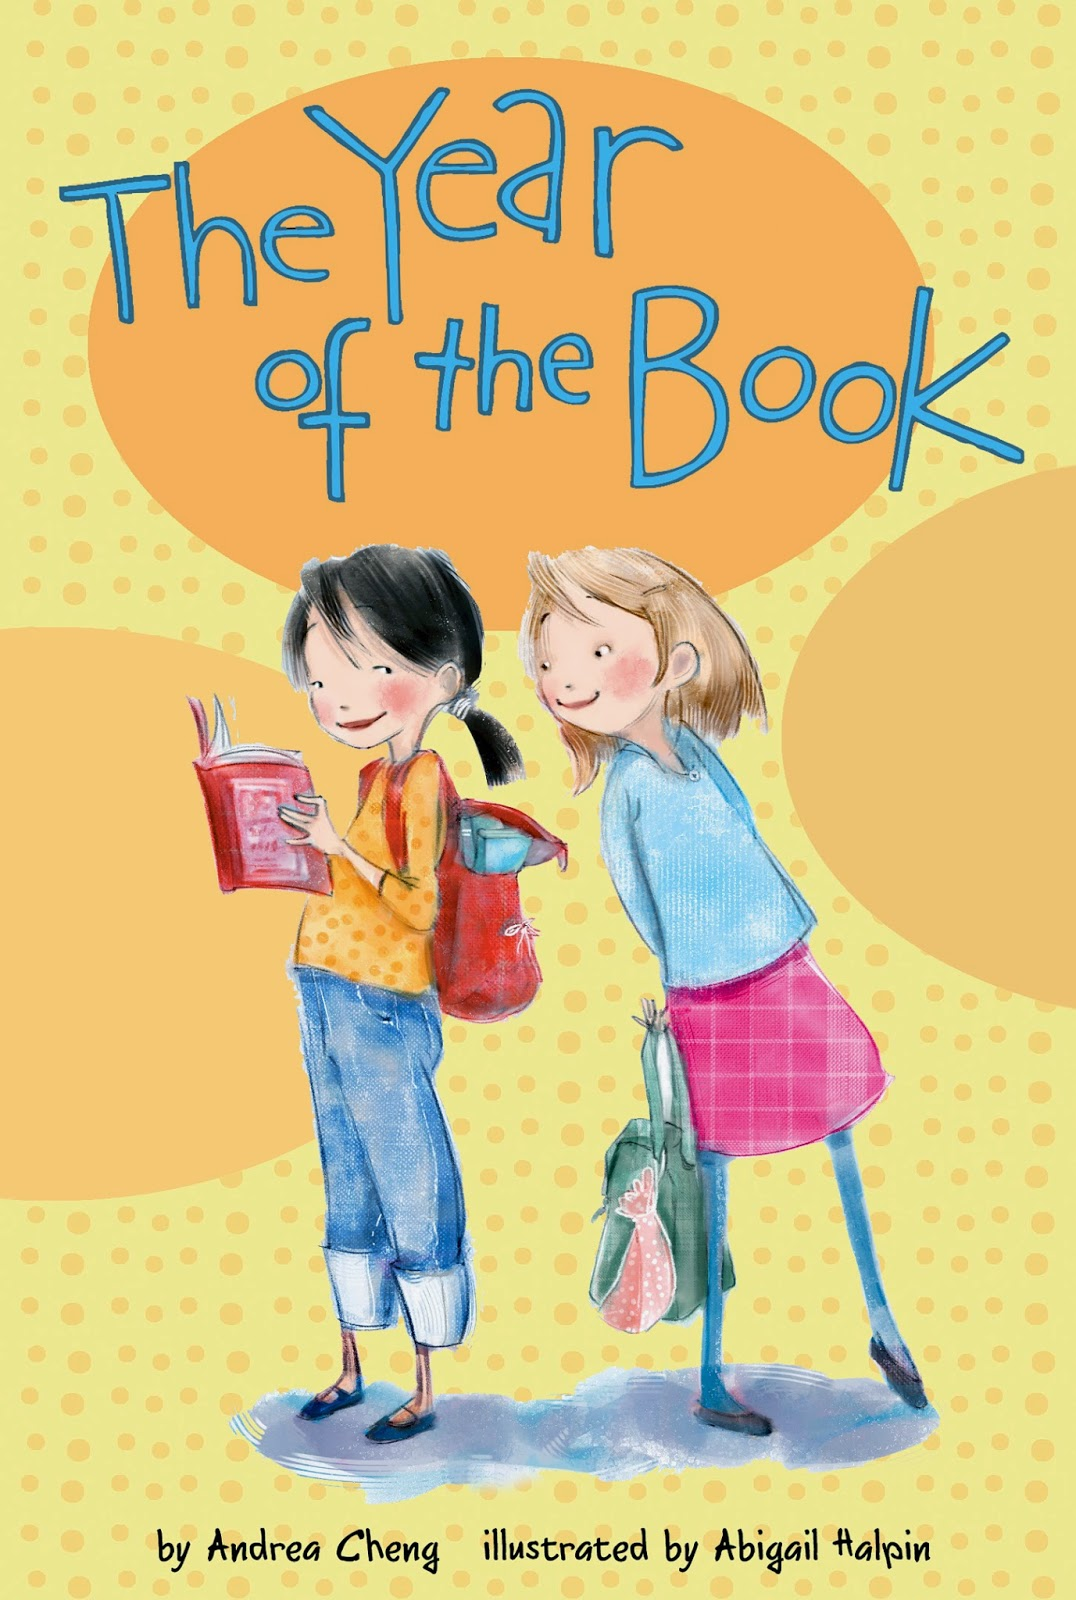 Book cover: Year of the Book by Andrea Cheng. A girl holding a book looks back toward a girl behind her who leans forward as if to see, from over her shoulder, what the first girl is reading.